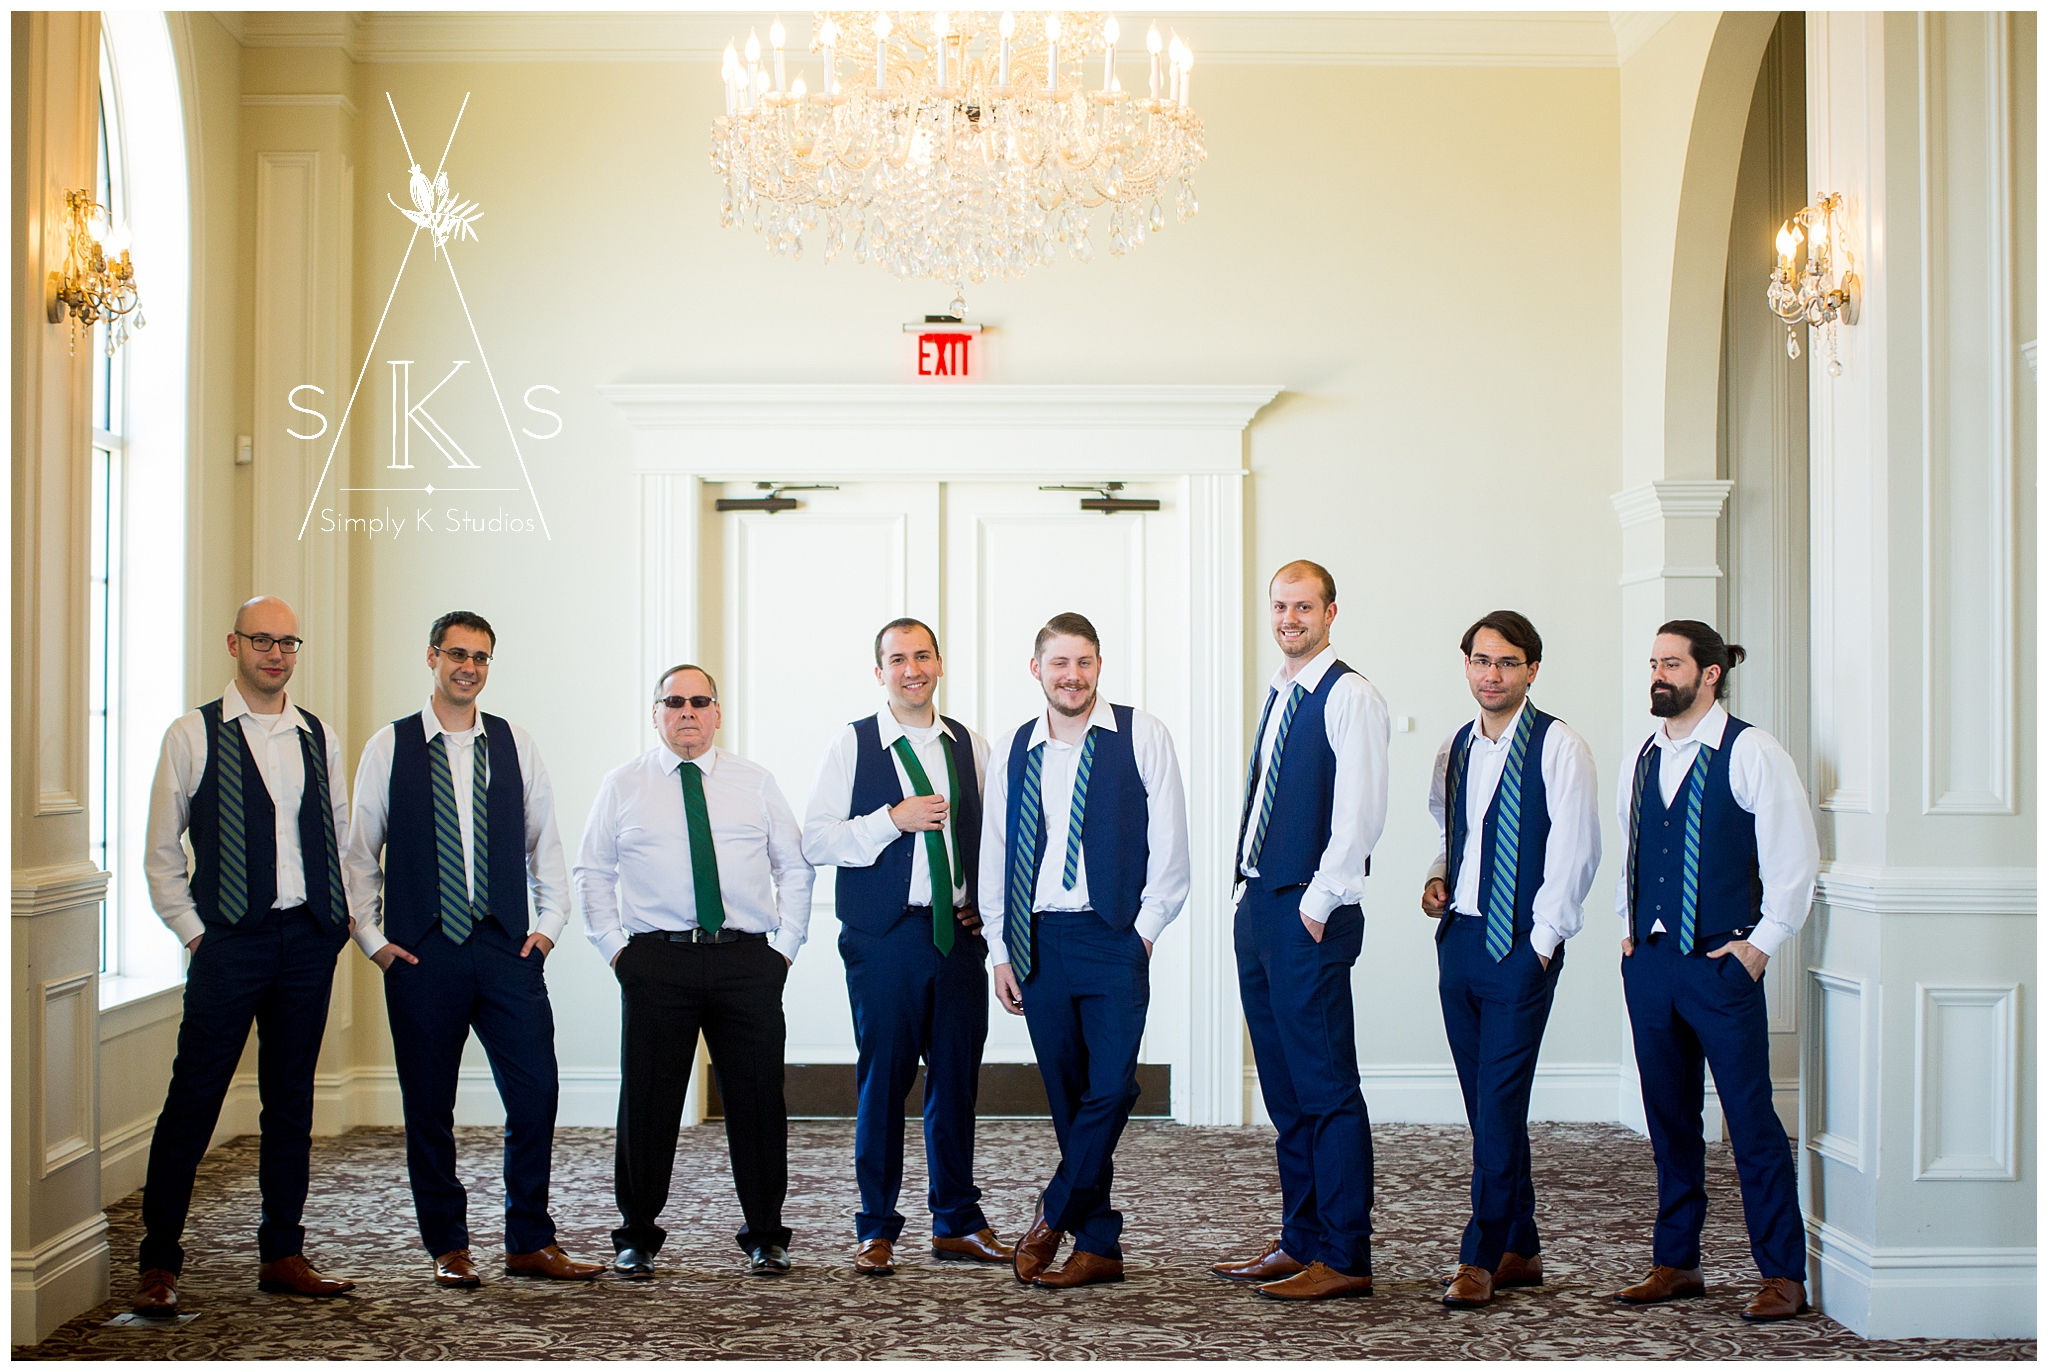 9 Groomsmen at a Wedding.jpg